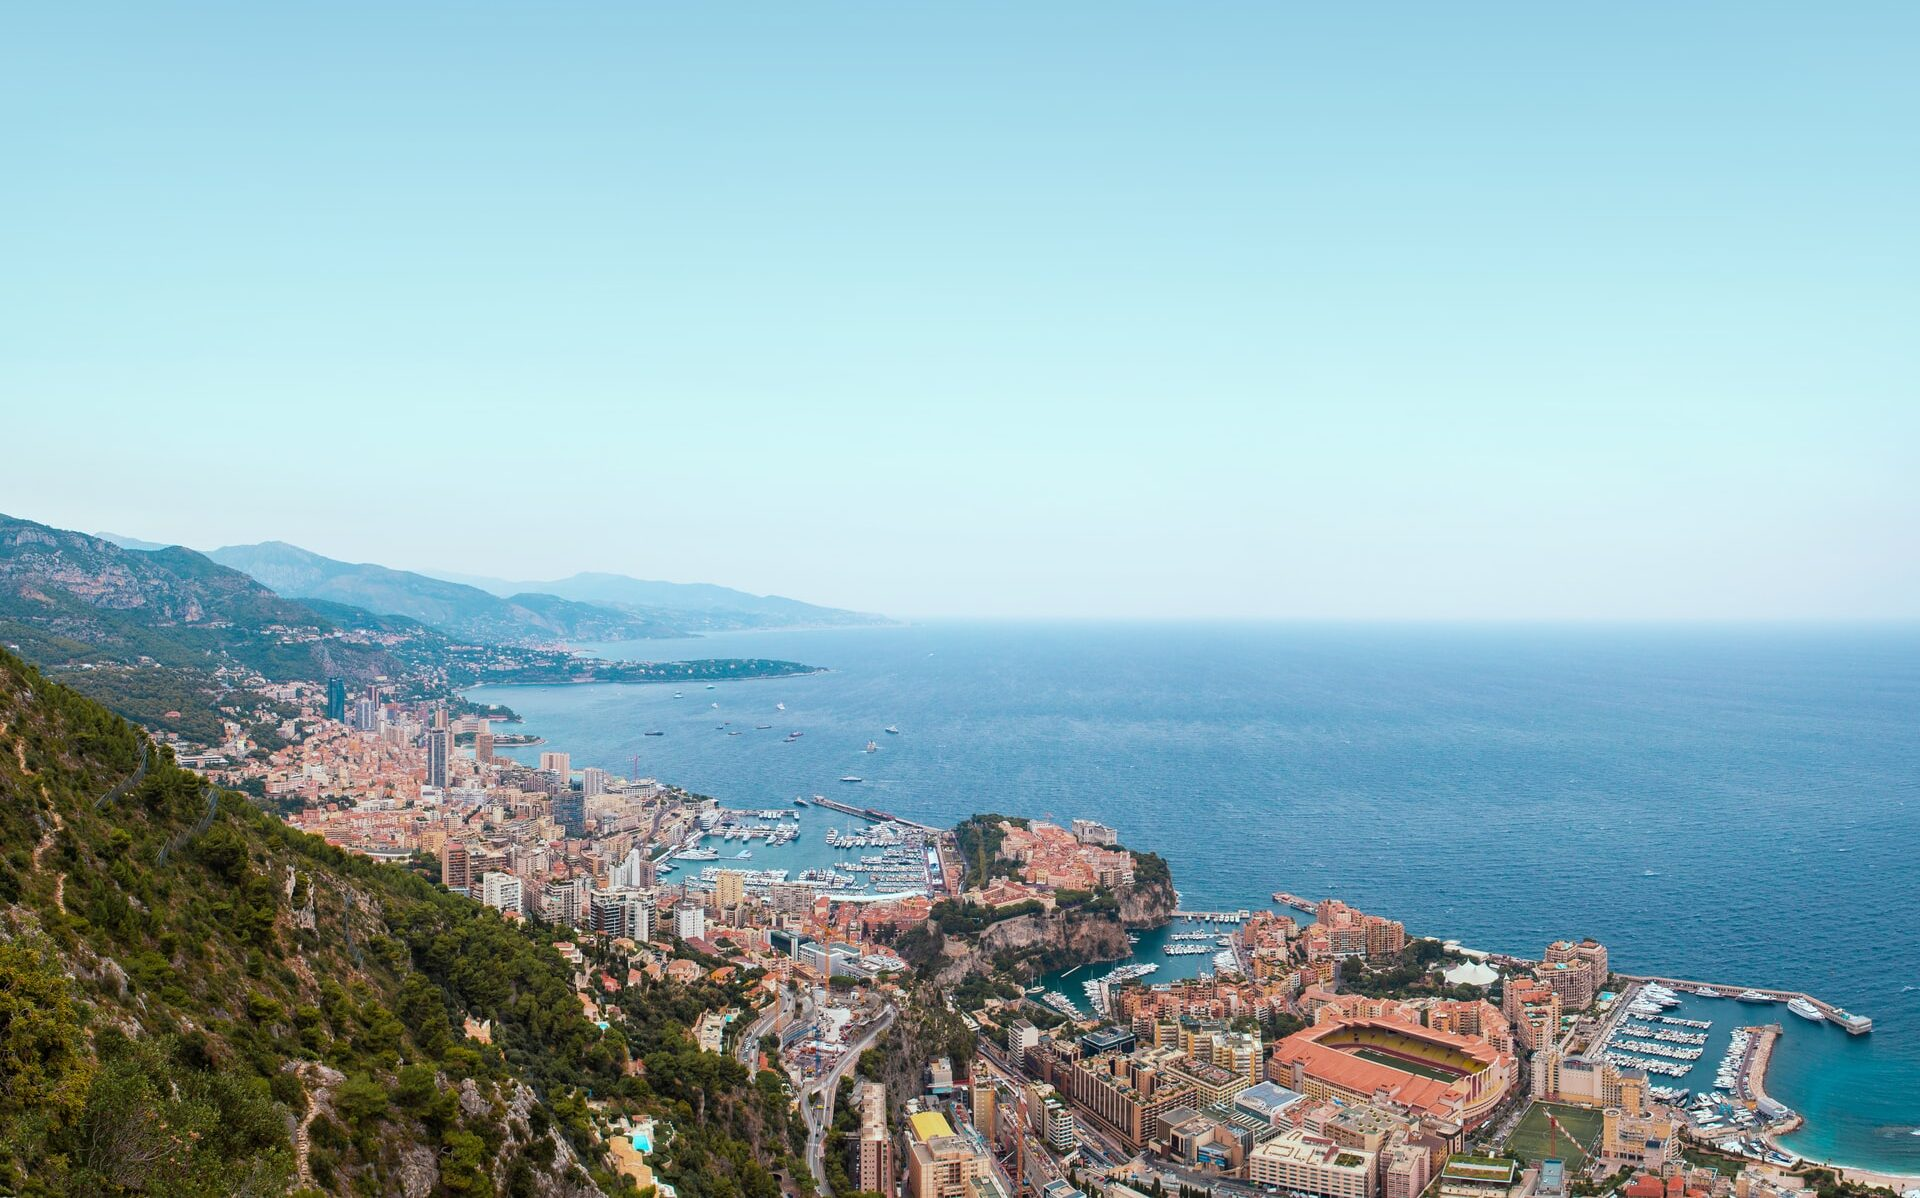 An aerial view of Monaco